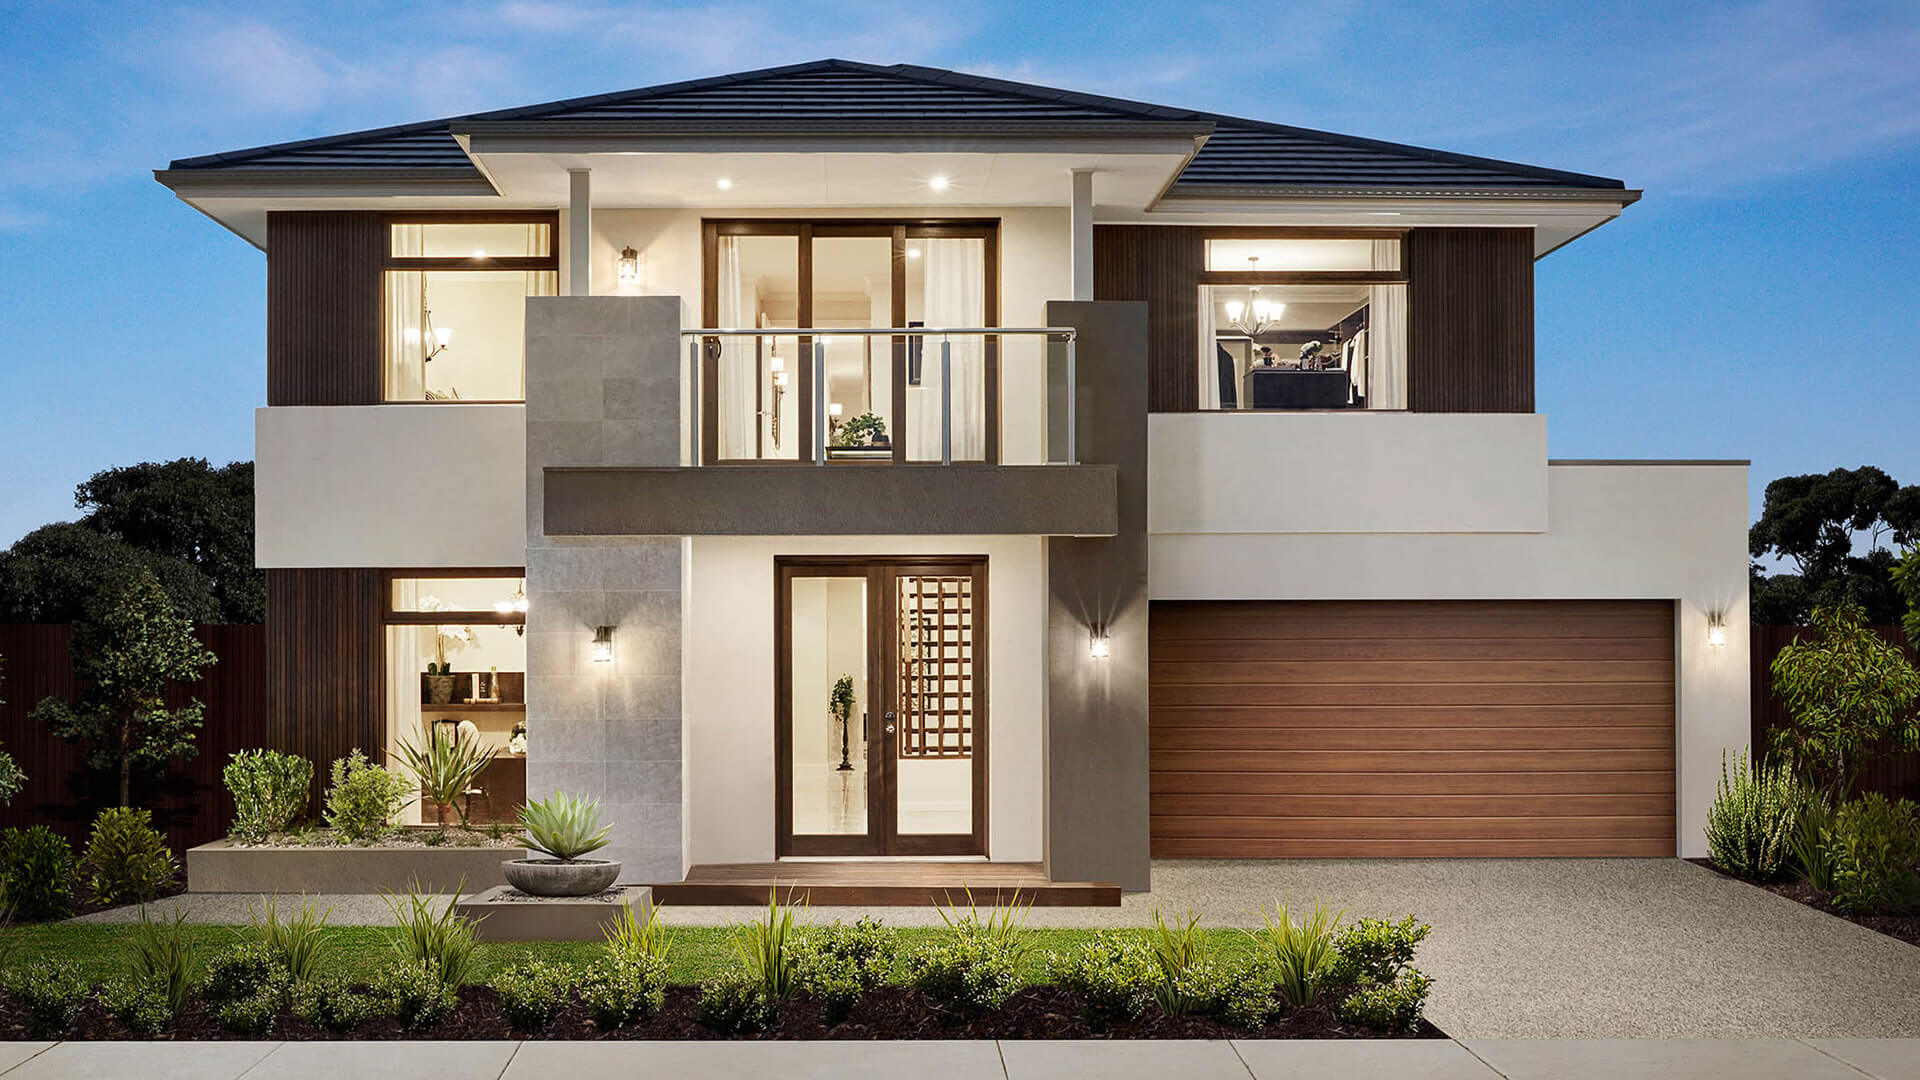 Montpellier Grand Houston Facade As Displayed At Highlands, Craigieburn